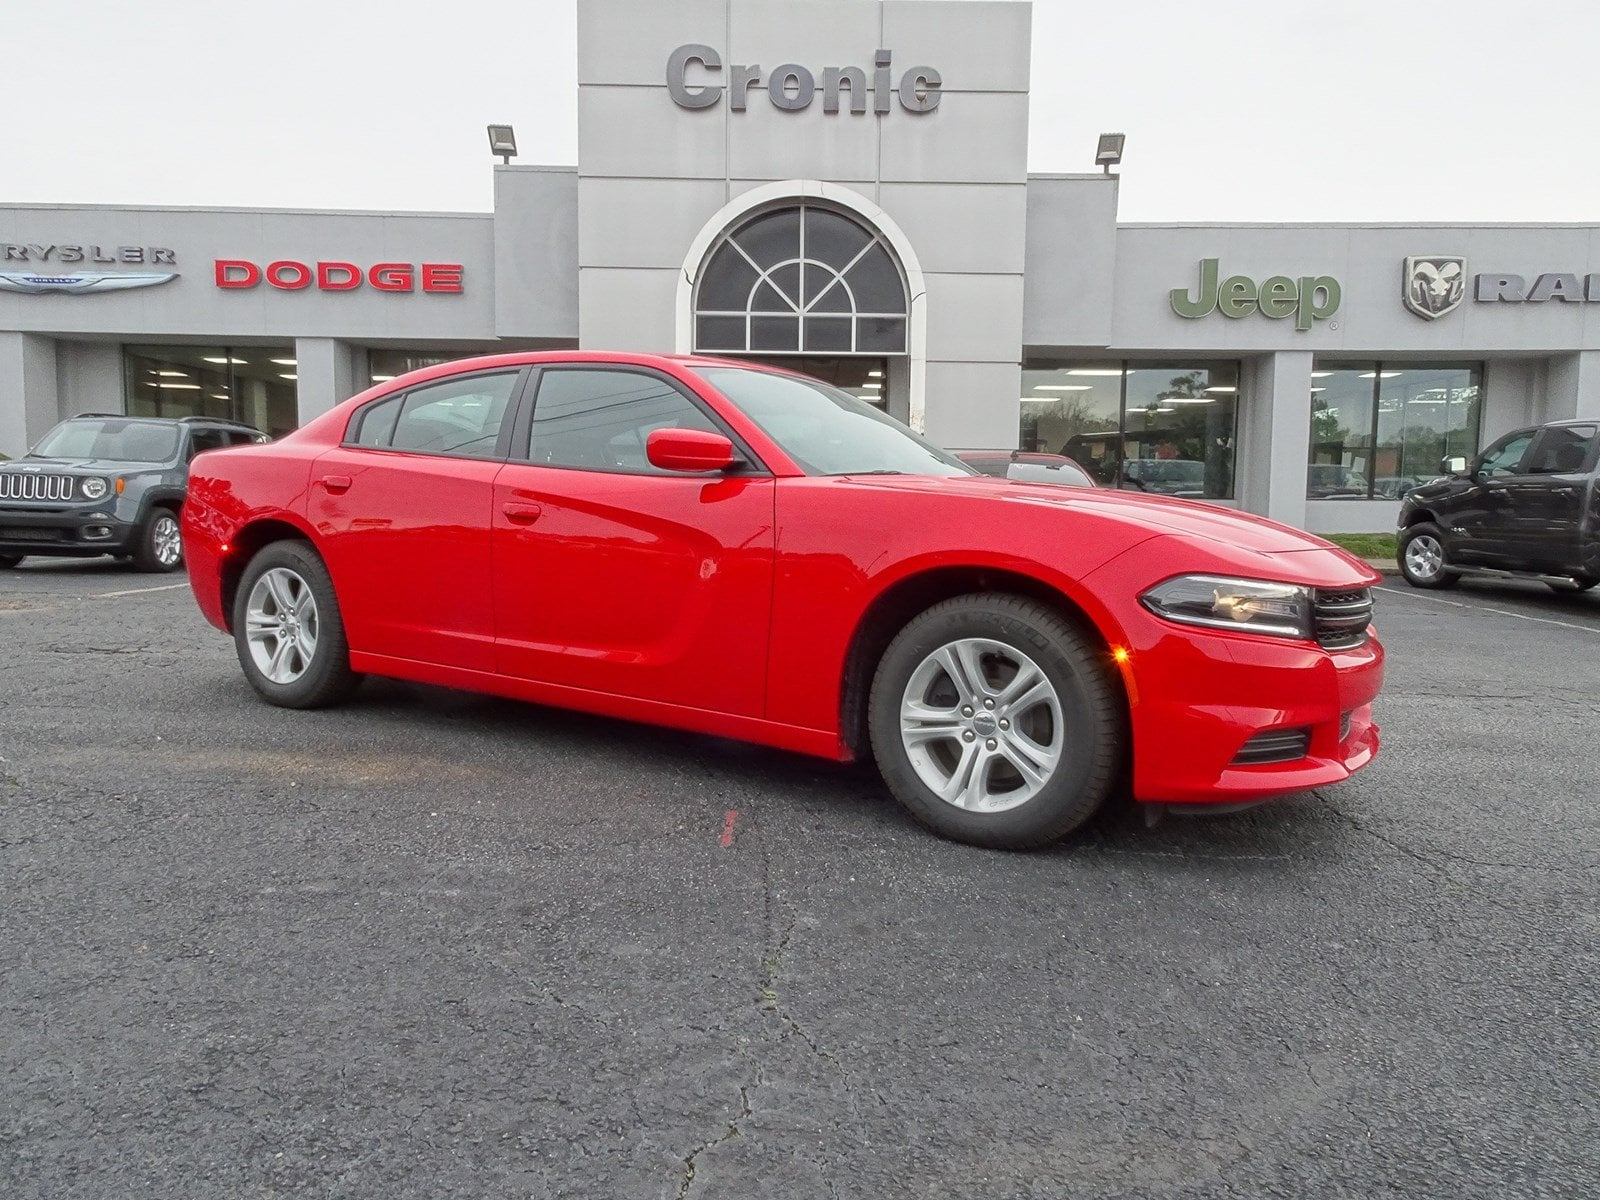 Used Dodge Charger for Sale New New and Used Dodge Charger for Sale In Morrow Ga Automall